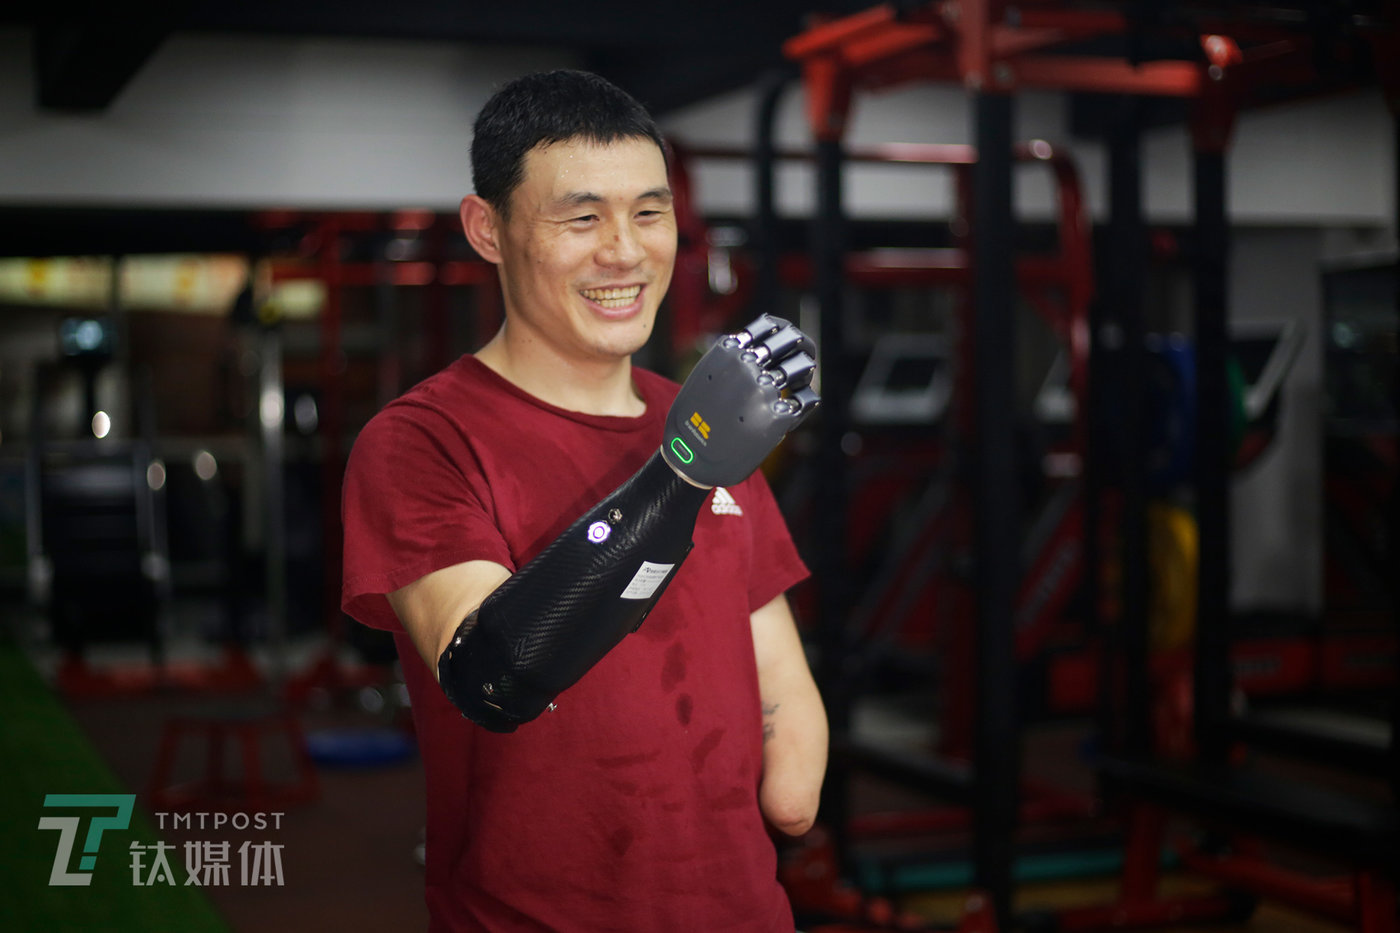 June 20, Jinhua, Zhejiang Province. Donning the BrainRobotics prosthetic hand, Ni Mincheng poses in his gym for a picture by TMTPOST Image.